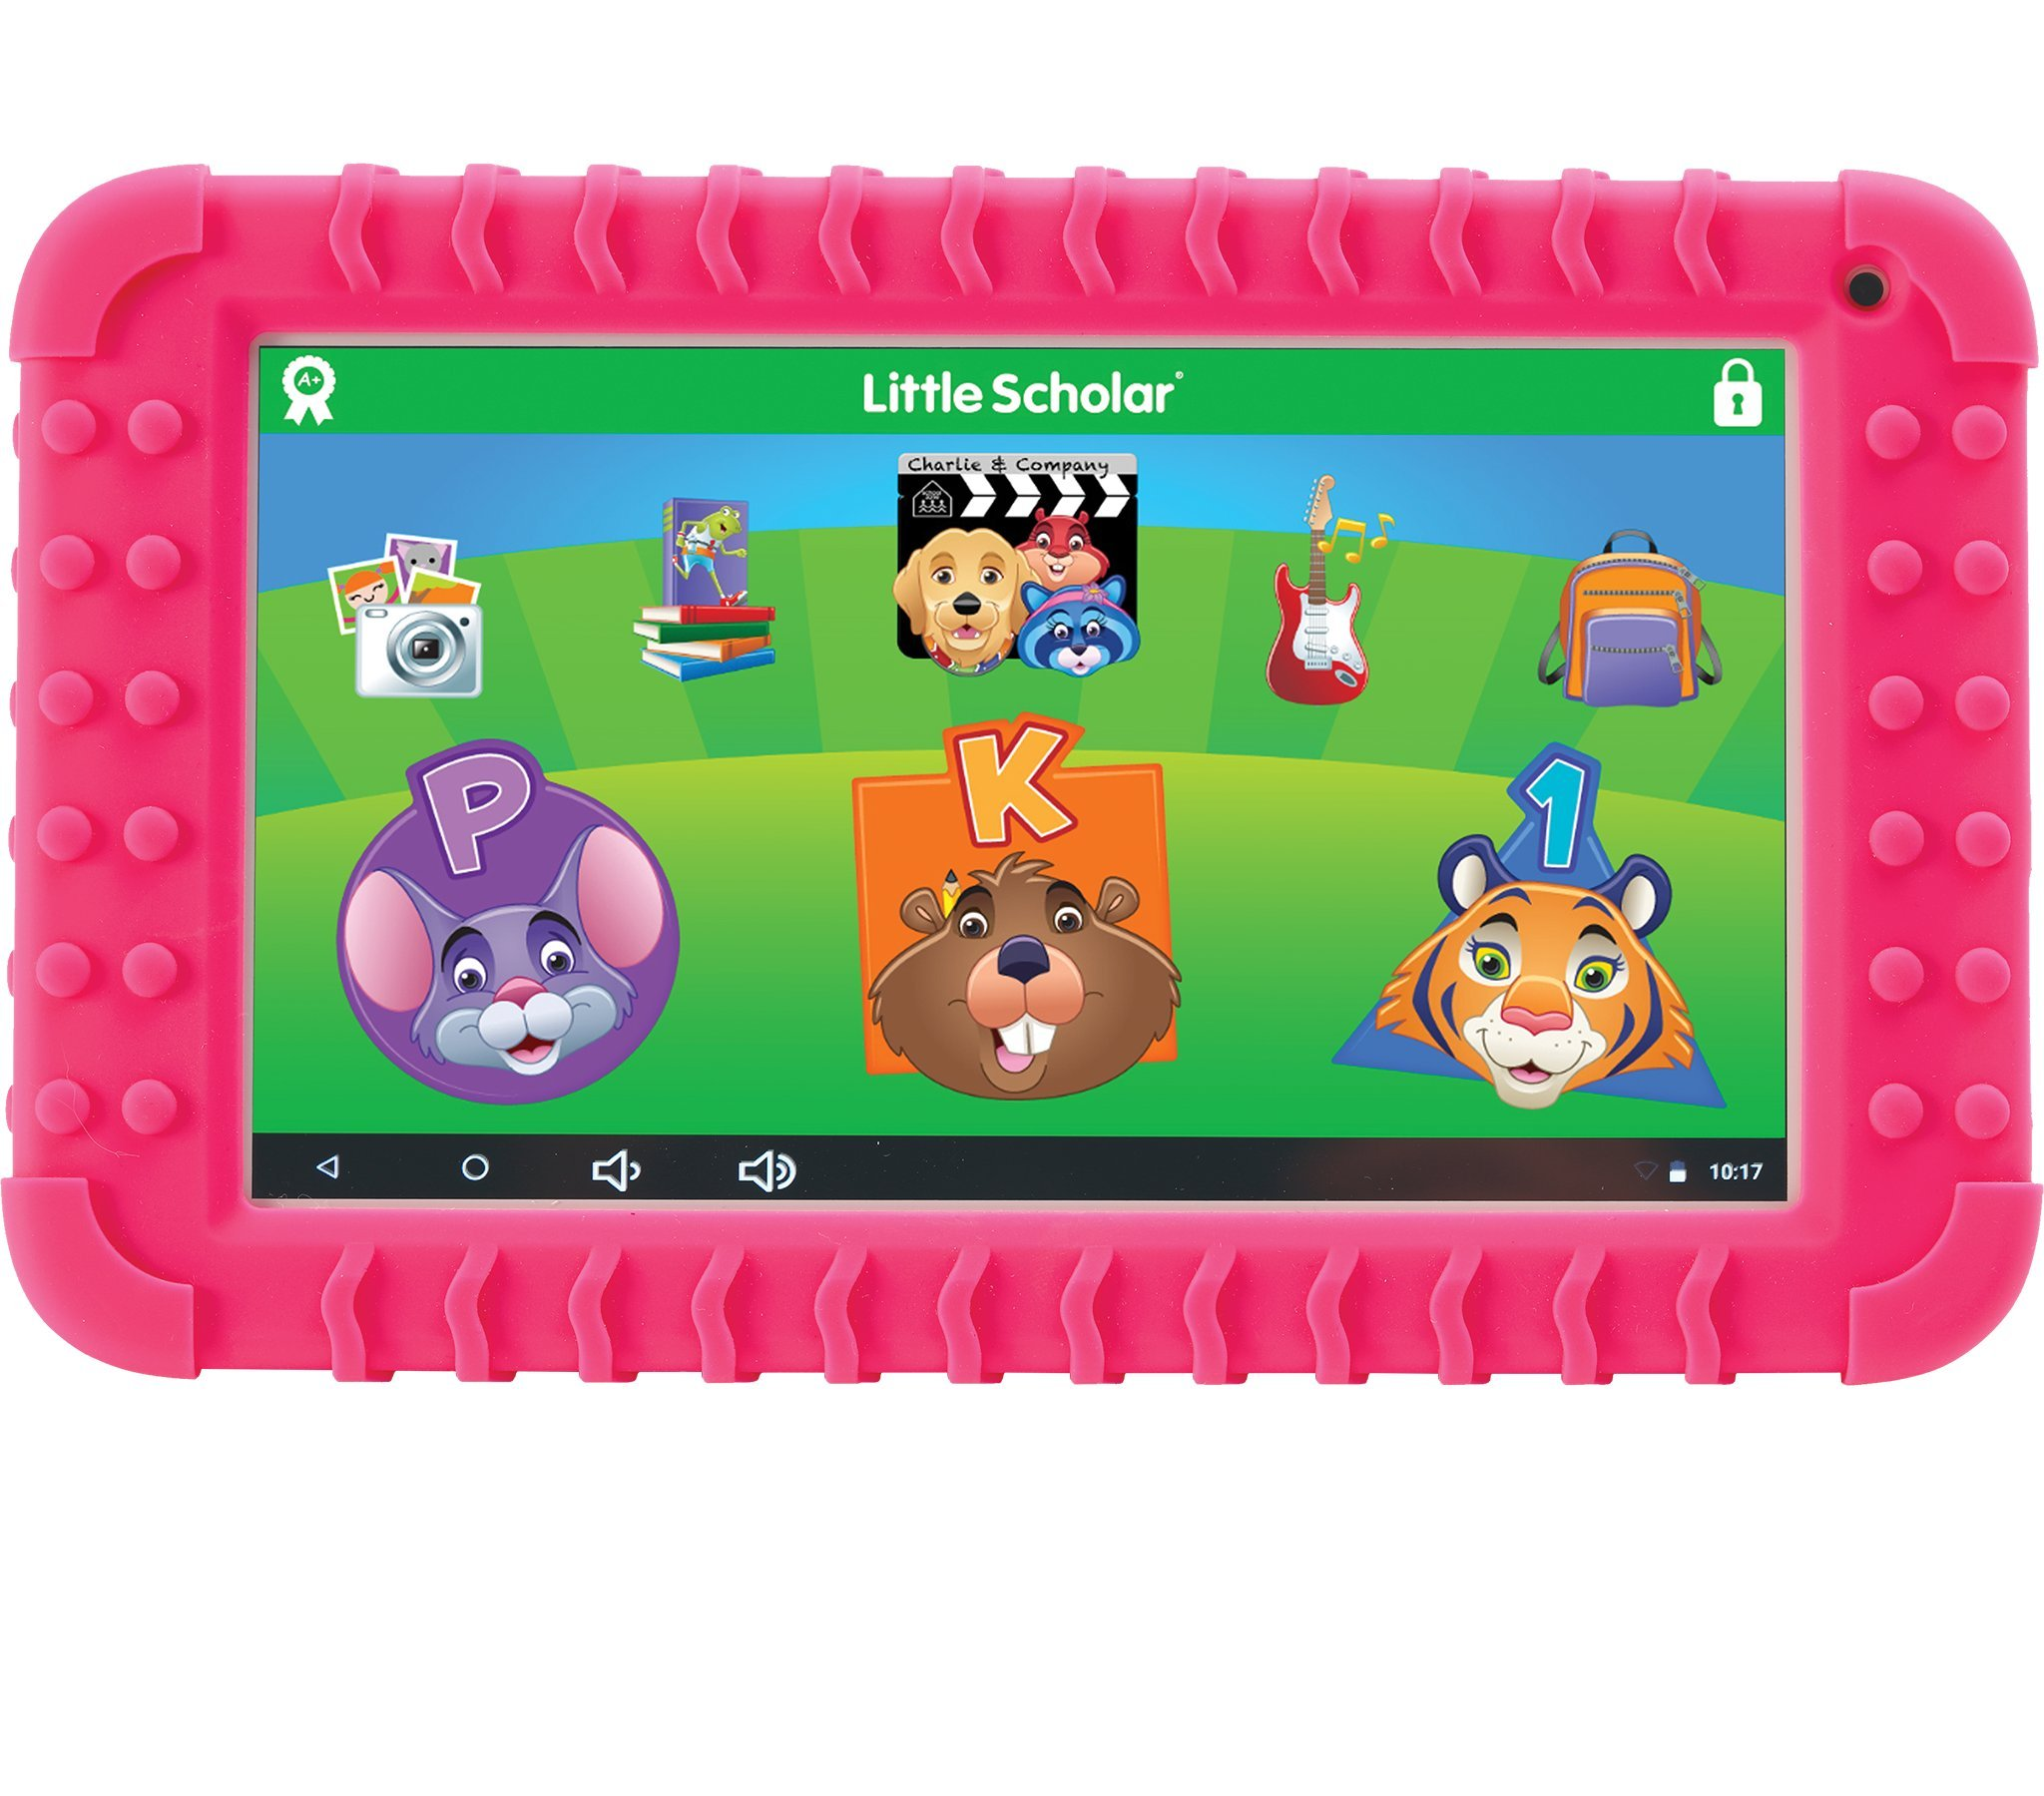 School Zone Little Scholar Best Kids 7'' Tablet, Ages 3-7, PreK-1st Grade, +Bumper, Android, Quad-Core, 16 GB, Wi-Fi, Front & Rear Camera, Pink (08612) by School Zone